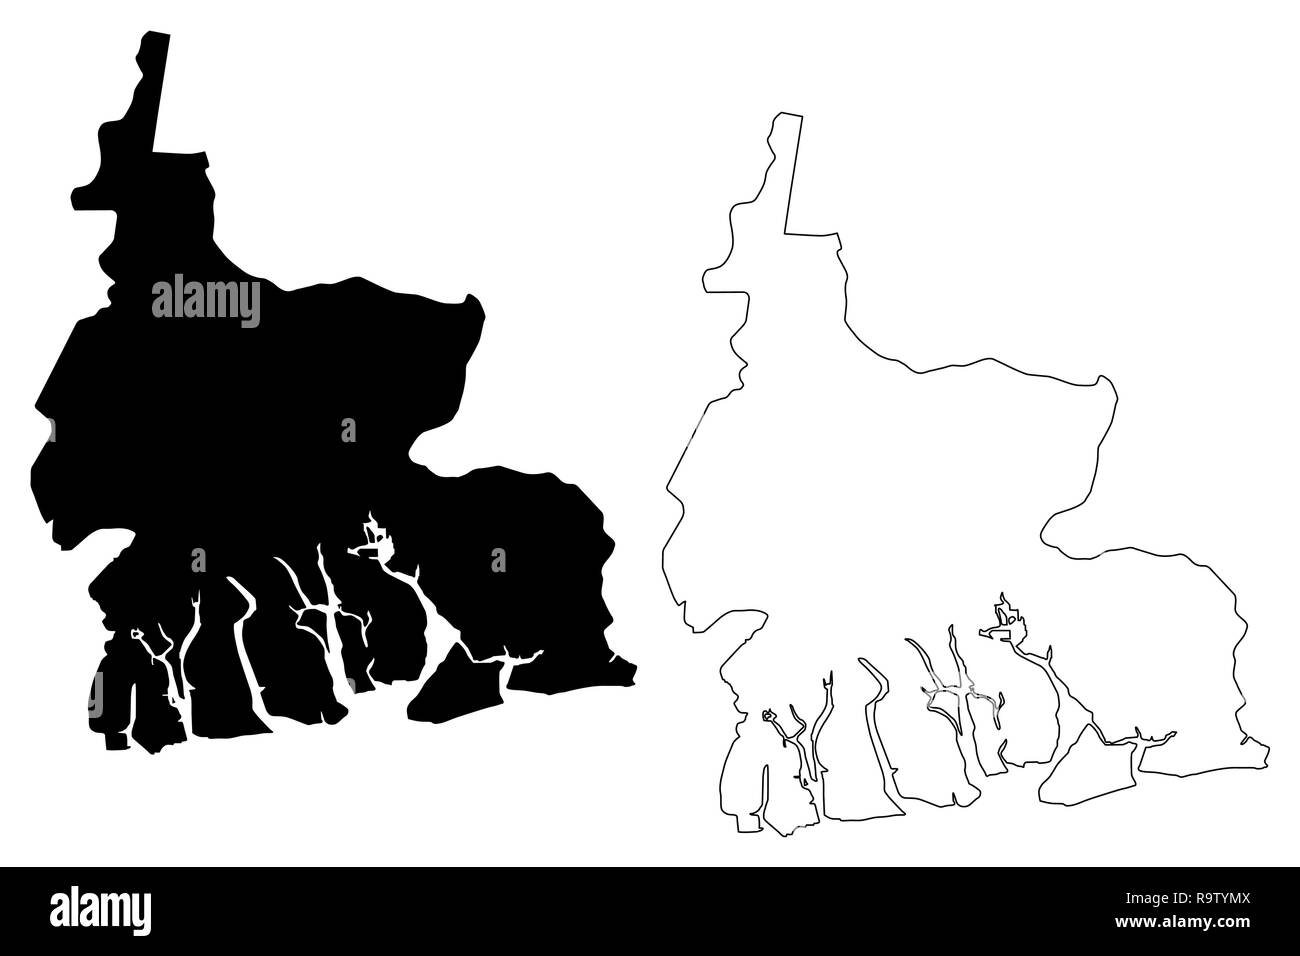 Rivers State (Subdivisions of Nigeria, Federated state of Nigeria) map vector illustration, scribble sketch Rivers map - Stock Image